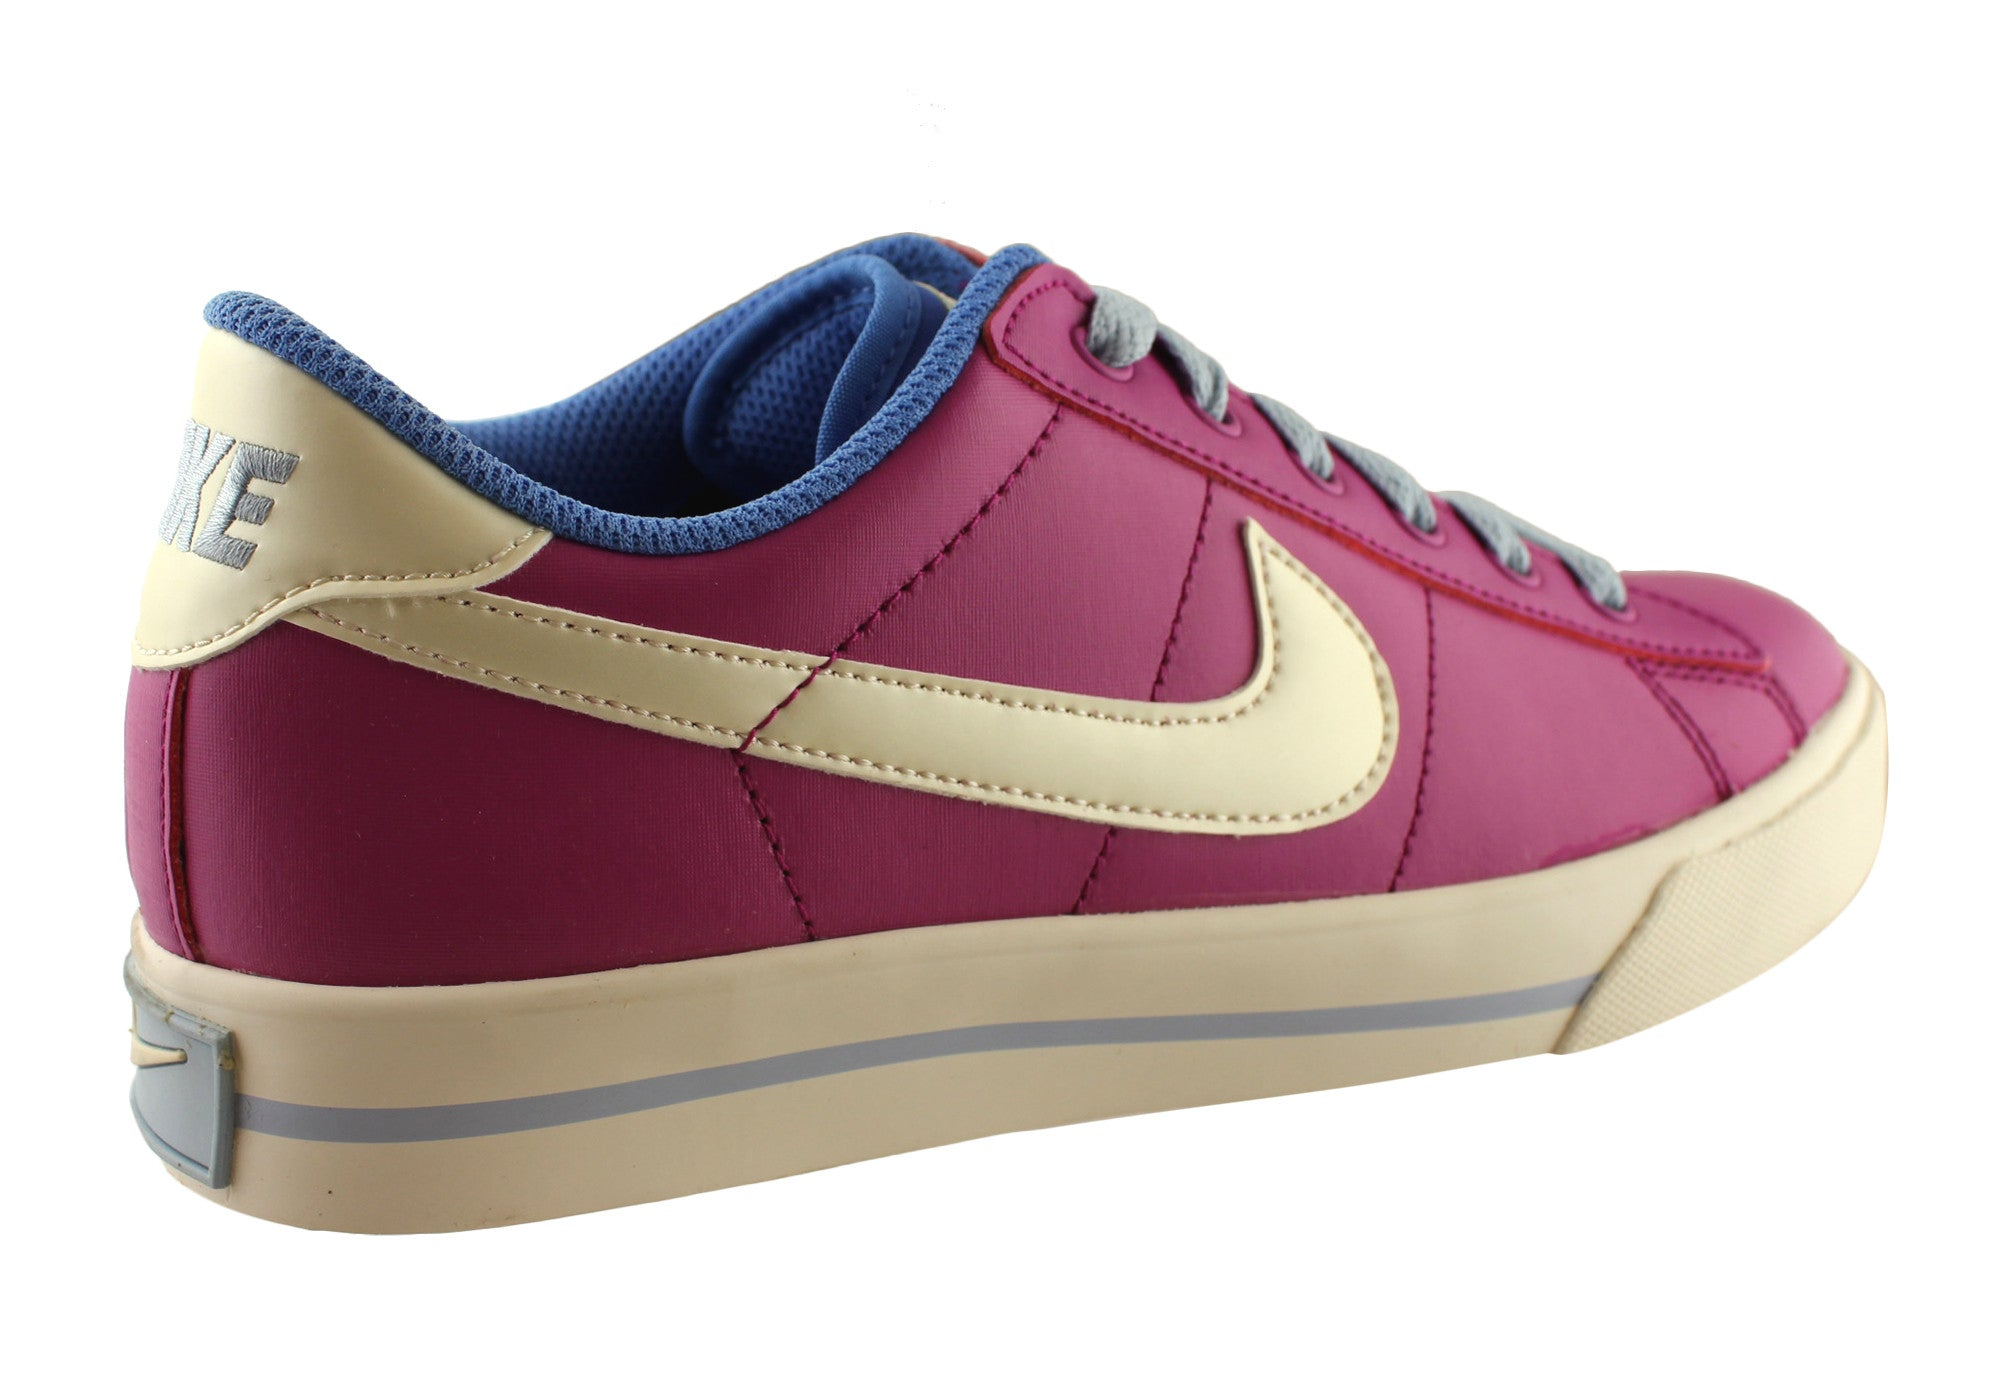 f57354dbd Nike Sweet Classic Leather Womens Comfortable Casual Shoes